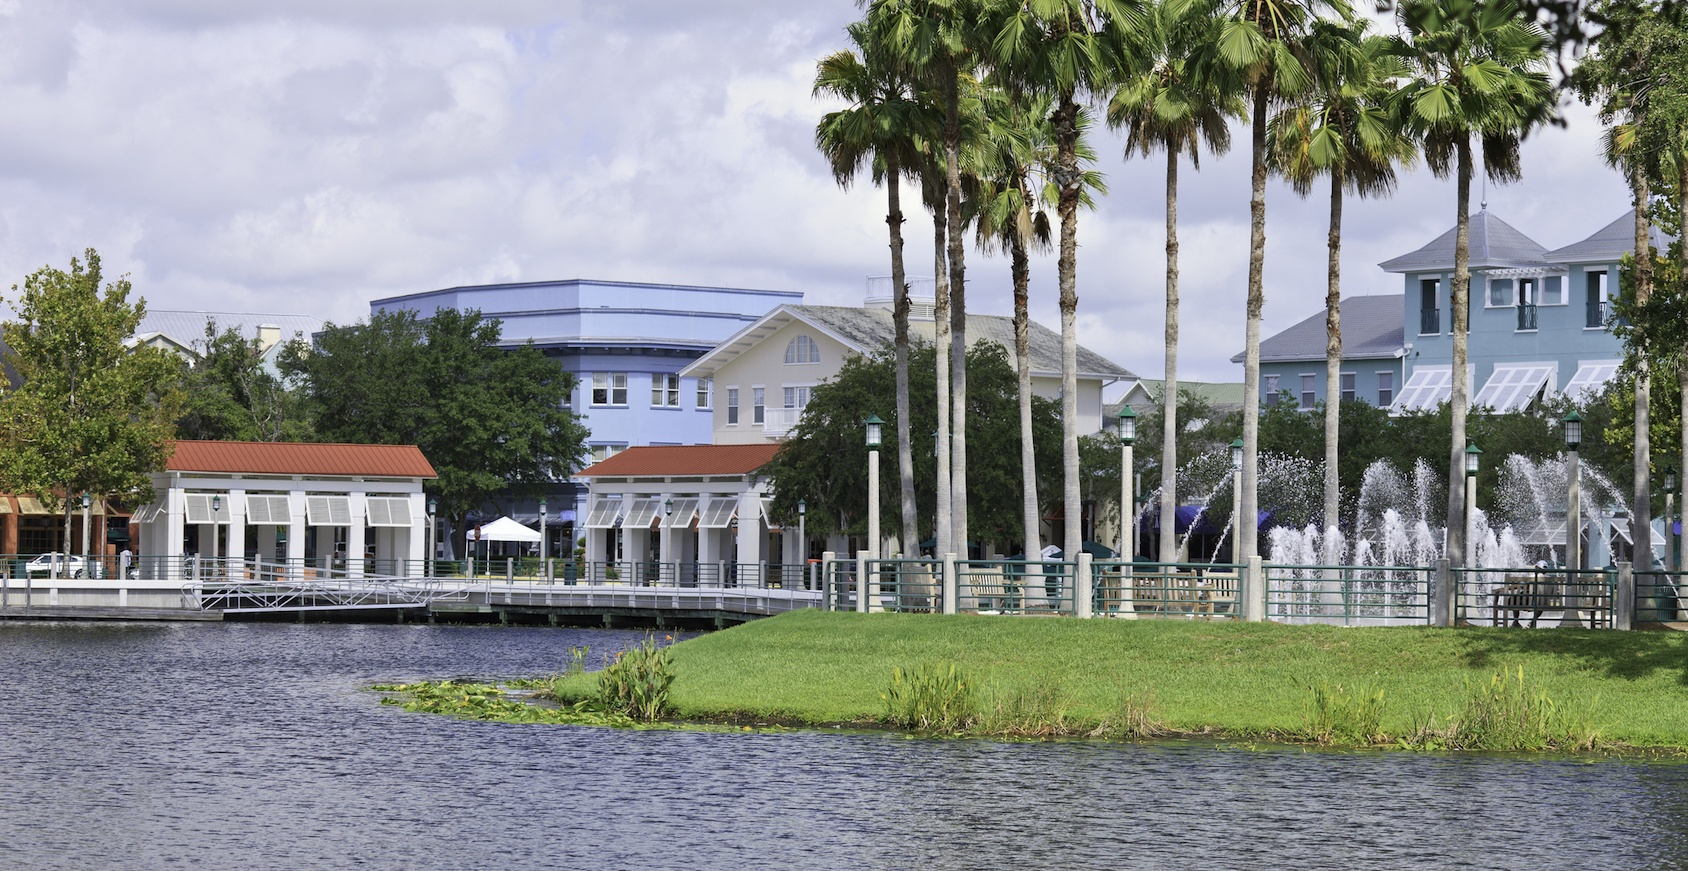 Waterside View of Celebration Florida Downtown & Lakefront